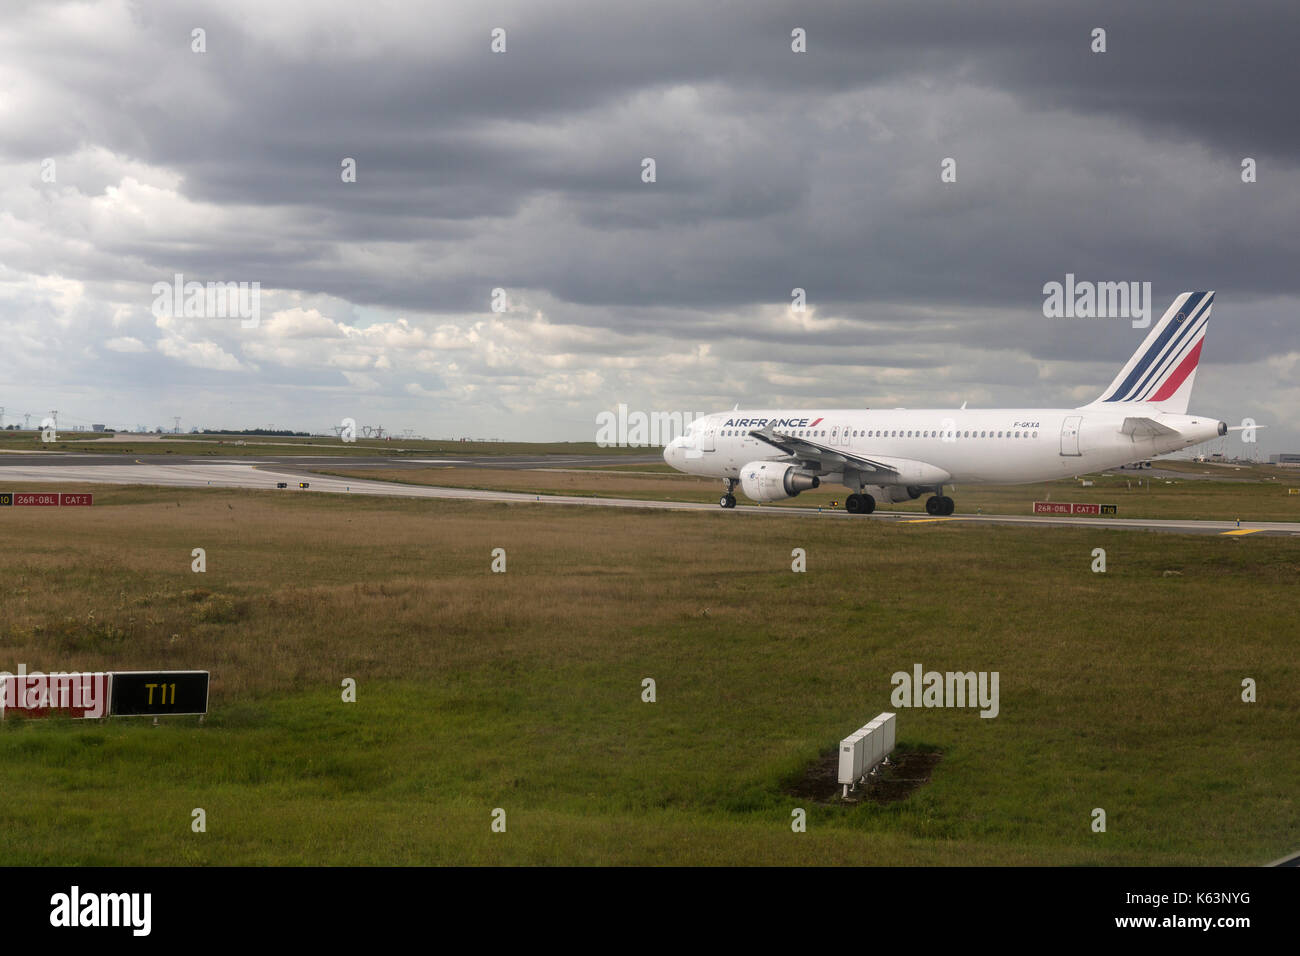 Air France Airbus A320, F-GKXA, taxying on to the runway for departure ate Paris Charles De Gaulle Airport. - Stock Image